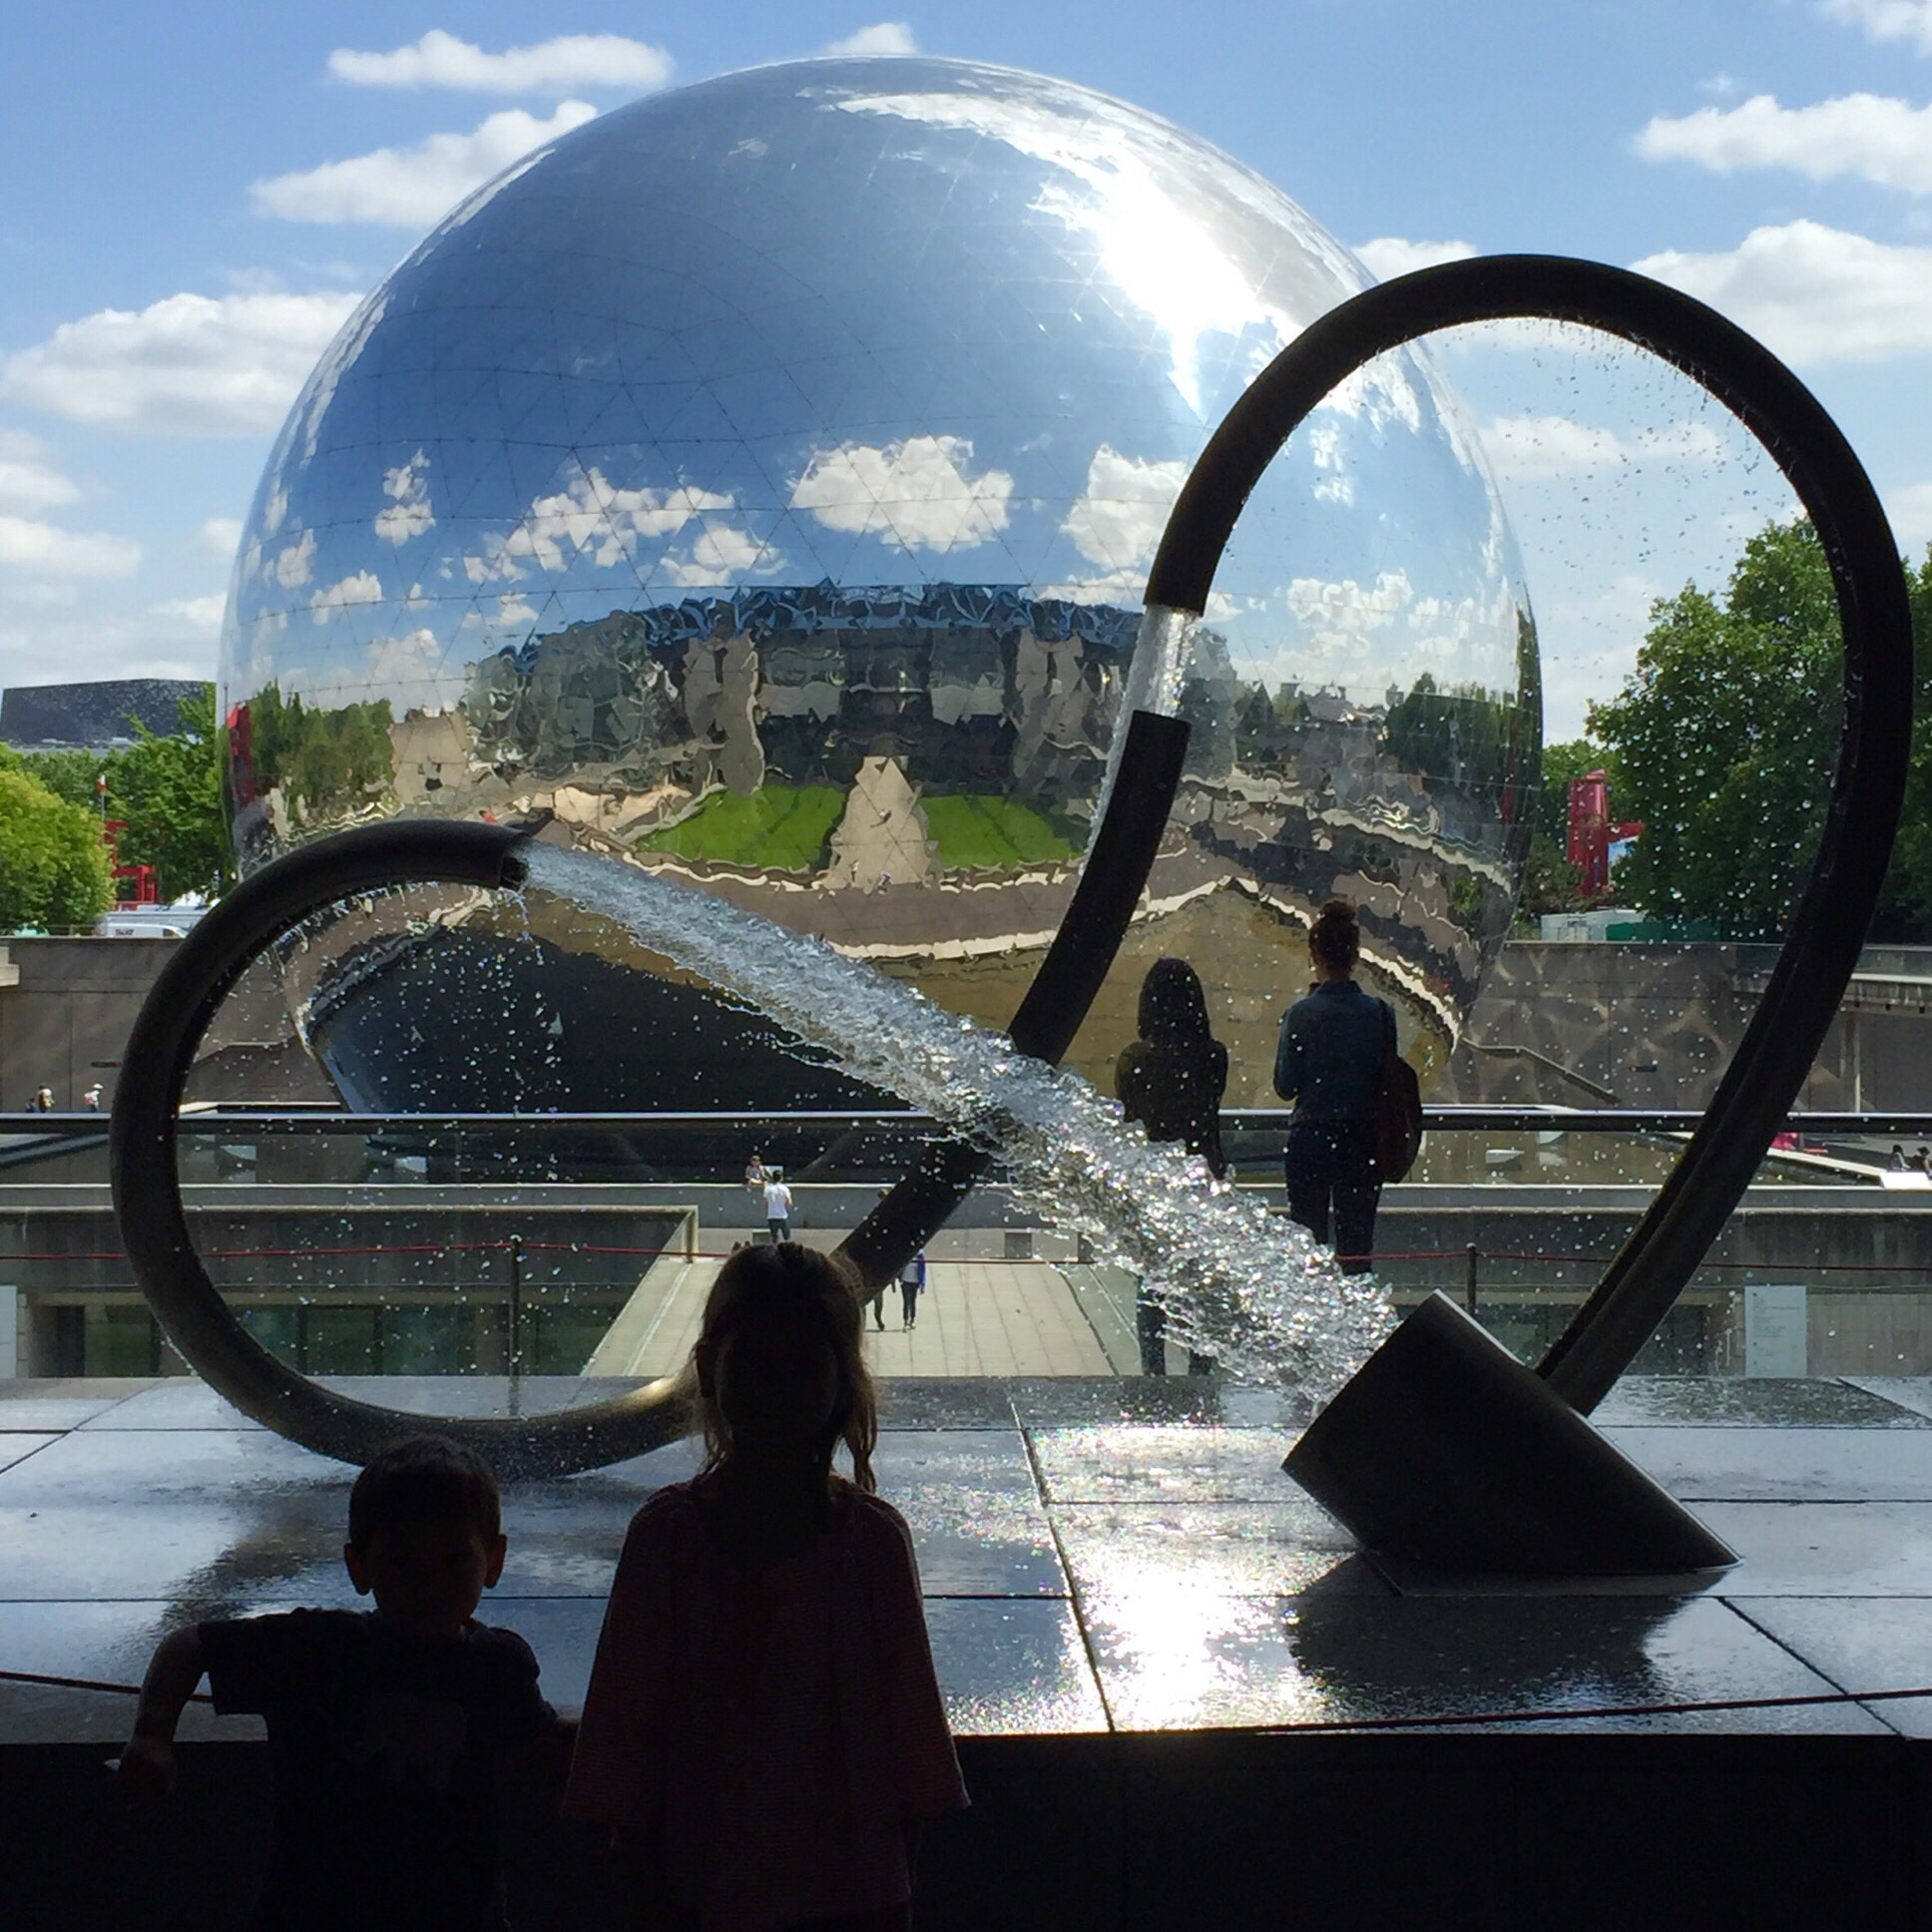 My children in front of the fountain and  géode  at  Cité des Sciences  in  Parc de la Vilette